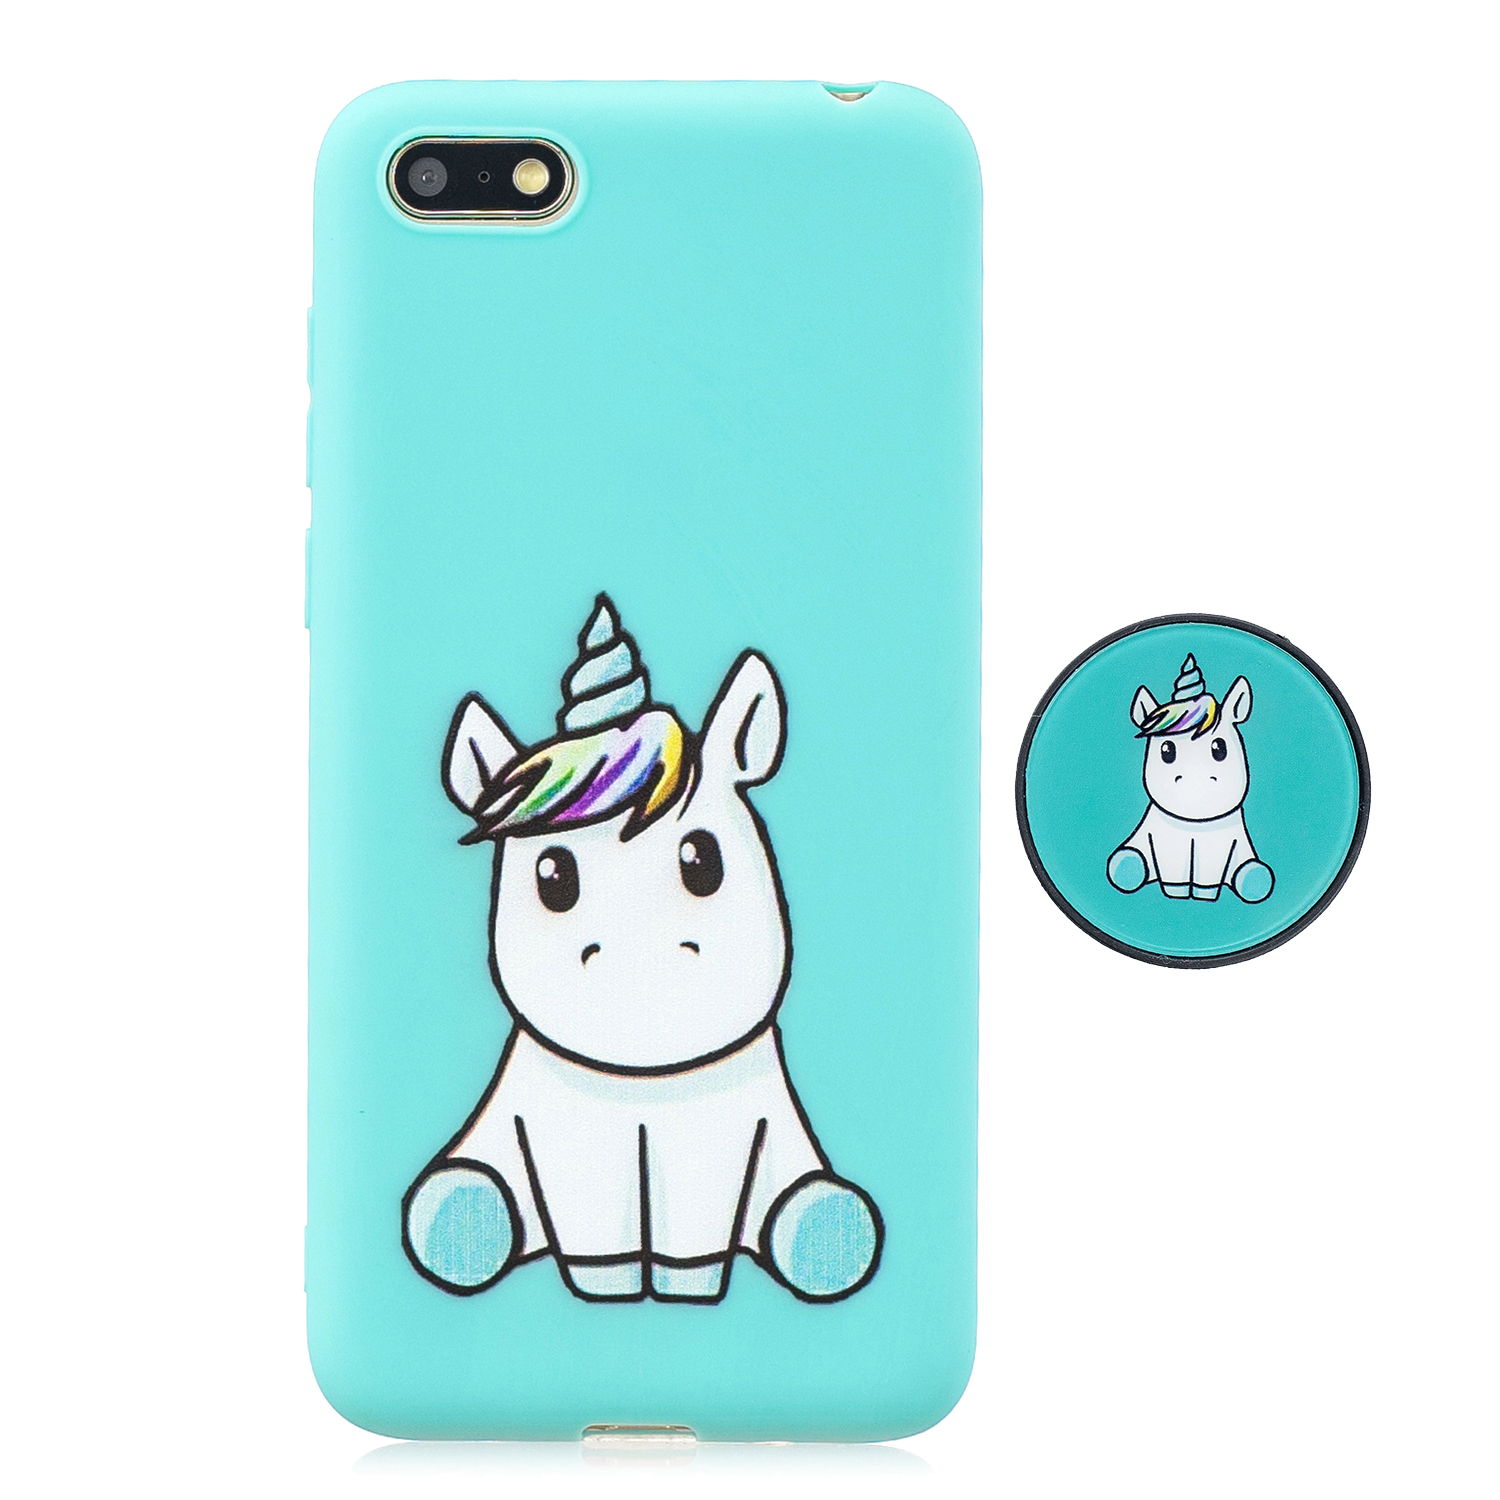 For HUAWEI Y5 2018 Pure Color Phone Cover Cute Cartoon Phone Case Lightweight Soft TPU Full Cover Phone Case with Matching Pattern Adjustable Bracket 5